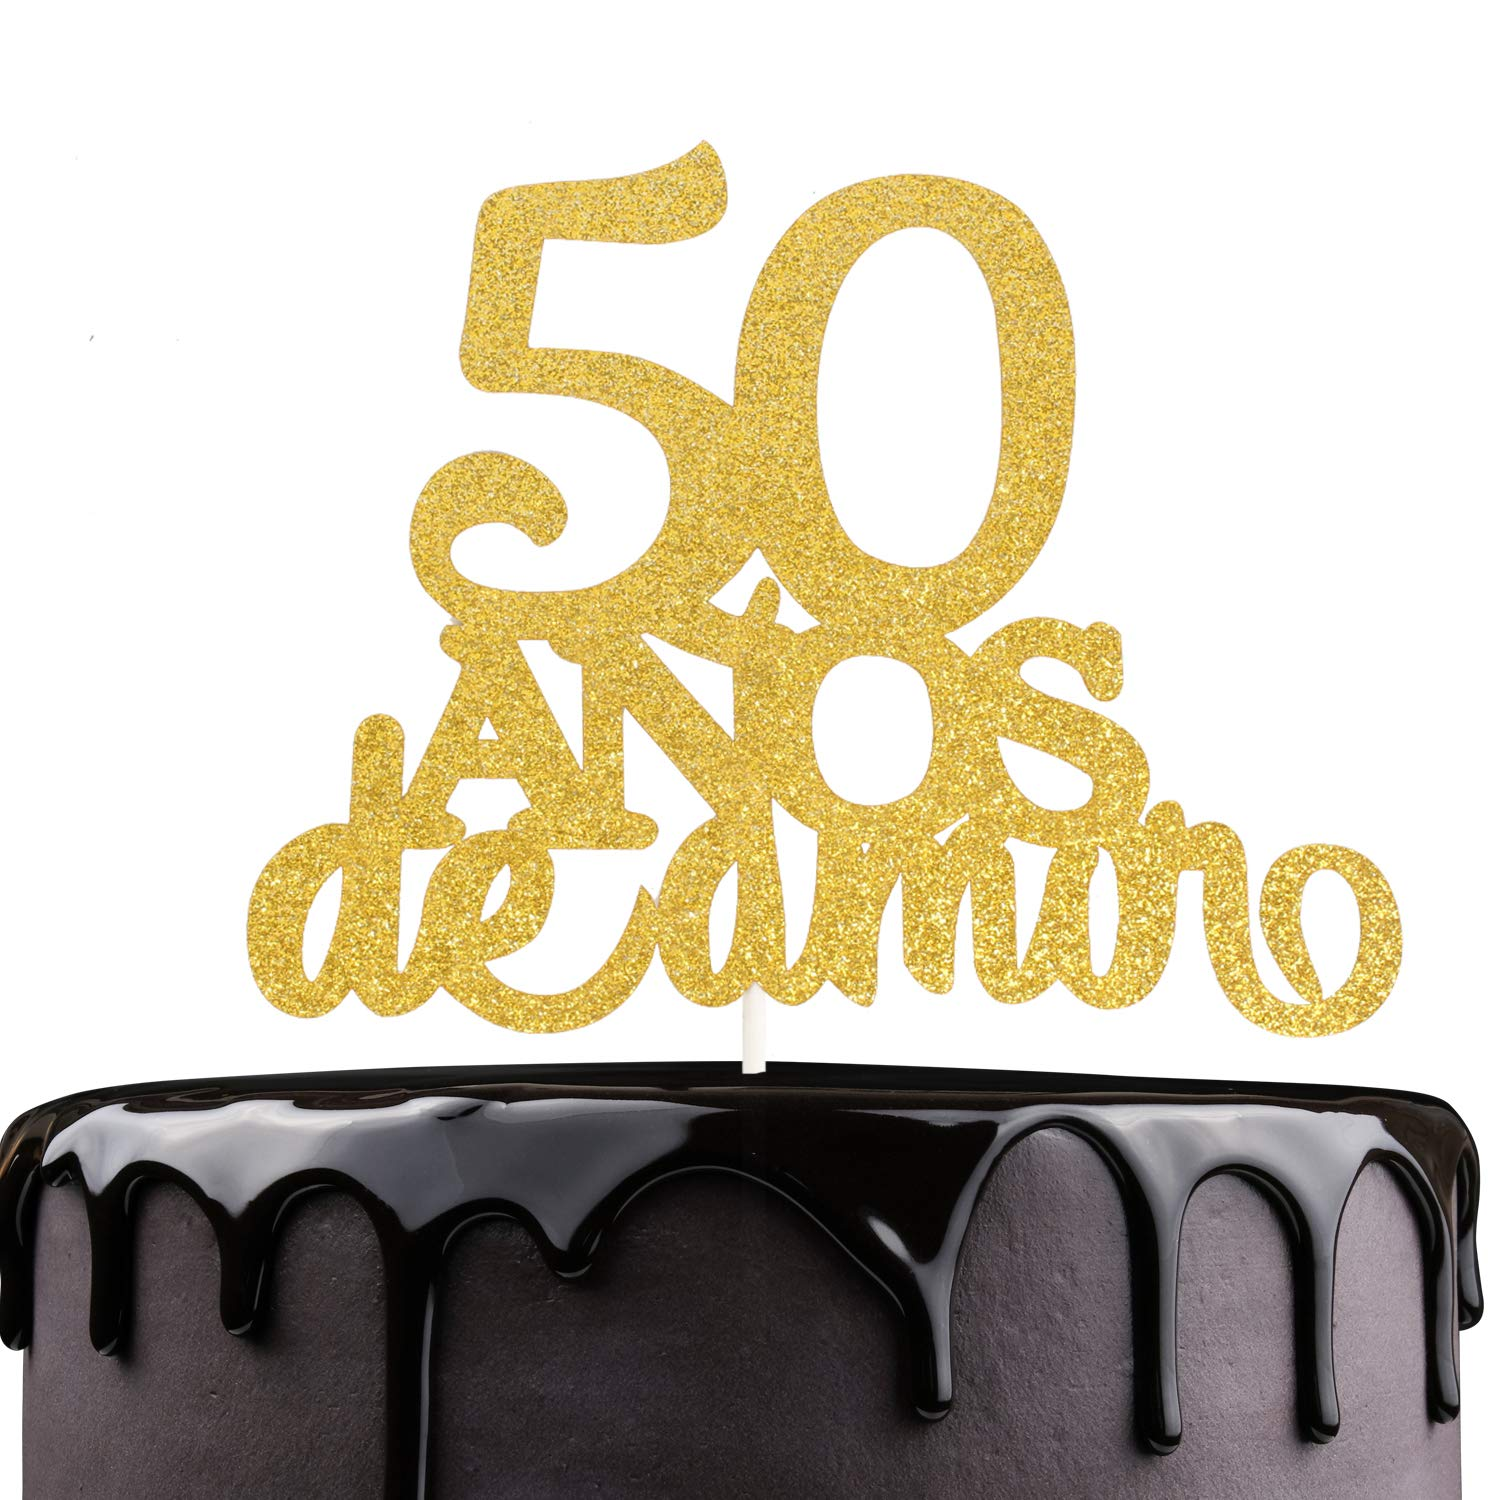 50th Anos De Amor Wedding Cake Topper - Gold Glitter Fifty Years Feliz Cumpleanos - Amada y Bendecida 50 Years Loved Blessed - Spanish Summer Carnival ...